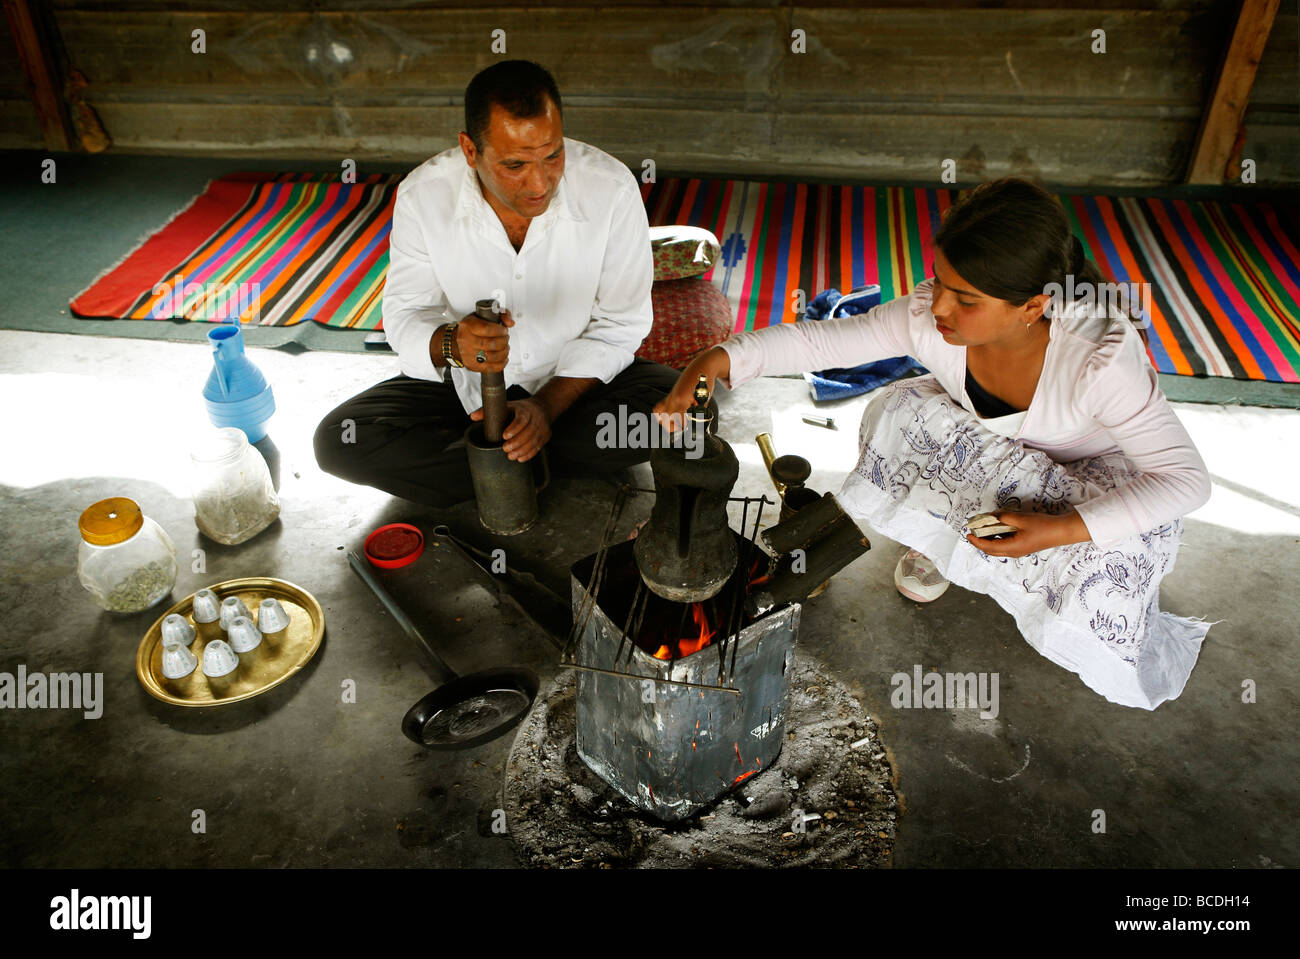 A Bedouin man and his daughter prepare traditional coffee in a tent in the unrecognized Bedouin village of El Araqeeb - Stock Image